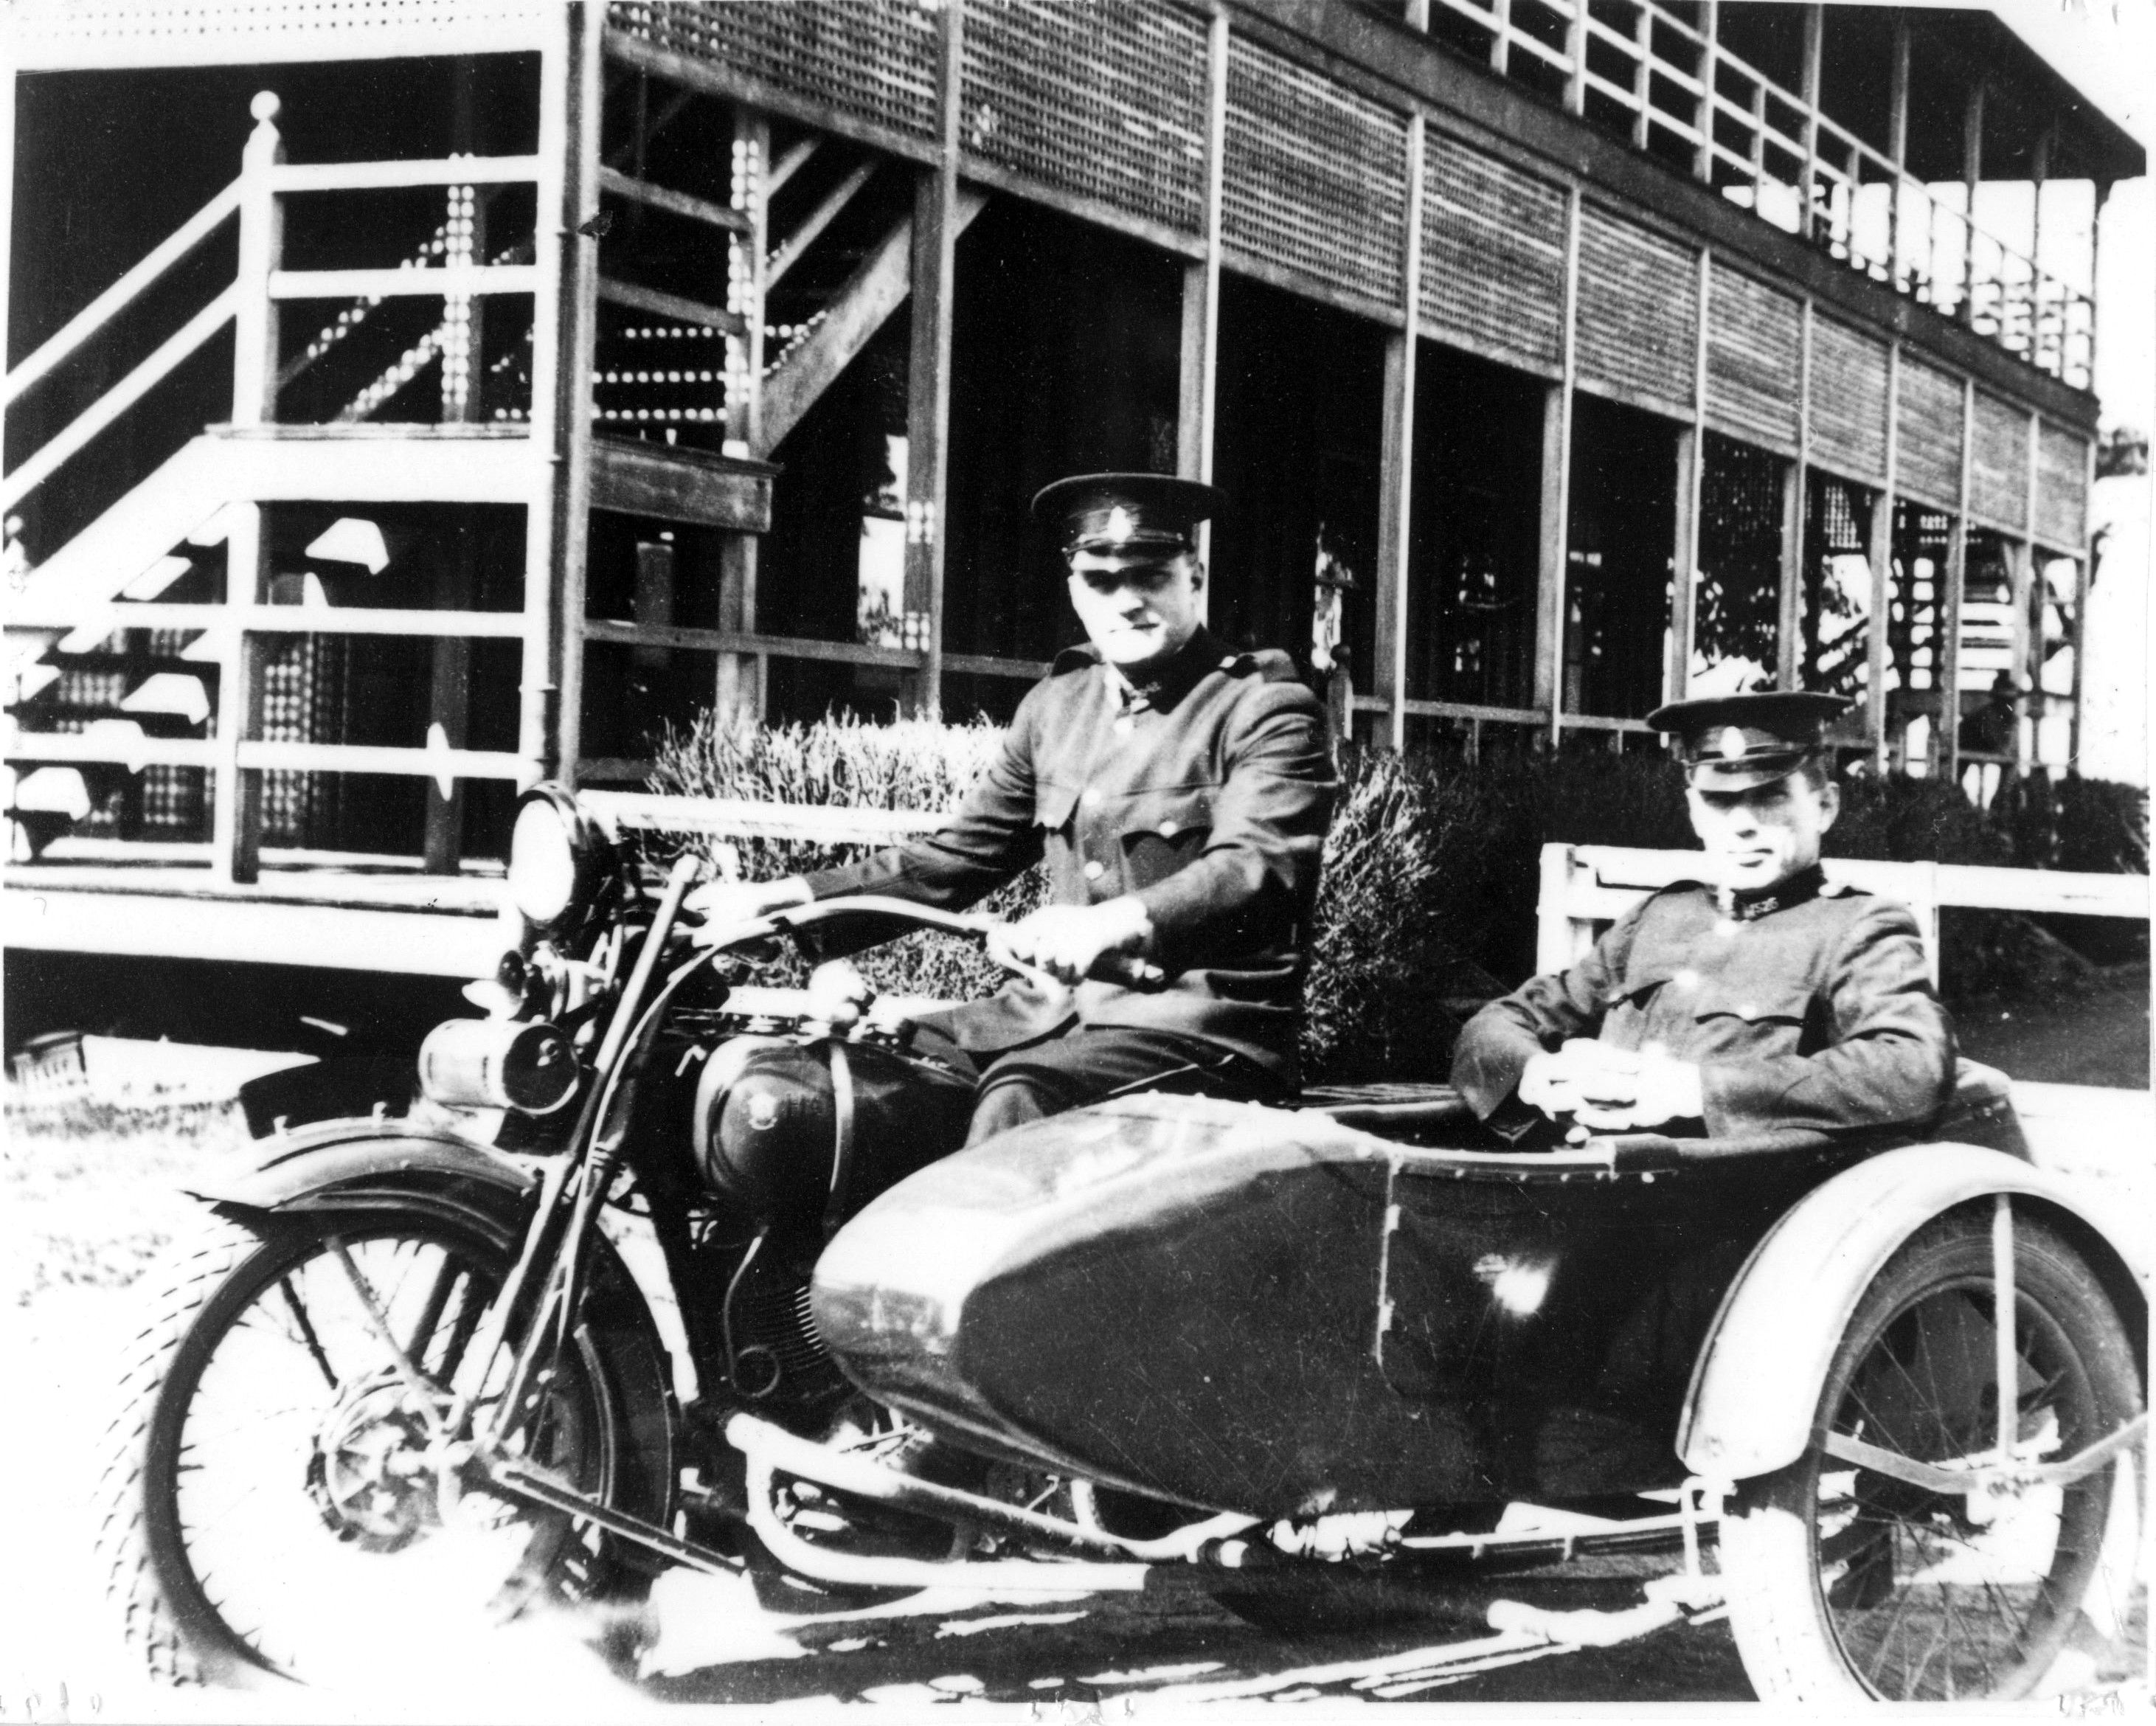 1927 Harley Davidson motorcycle and side car, photograph taken in ...